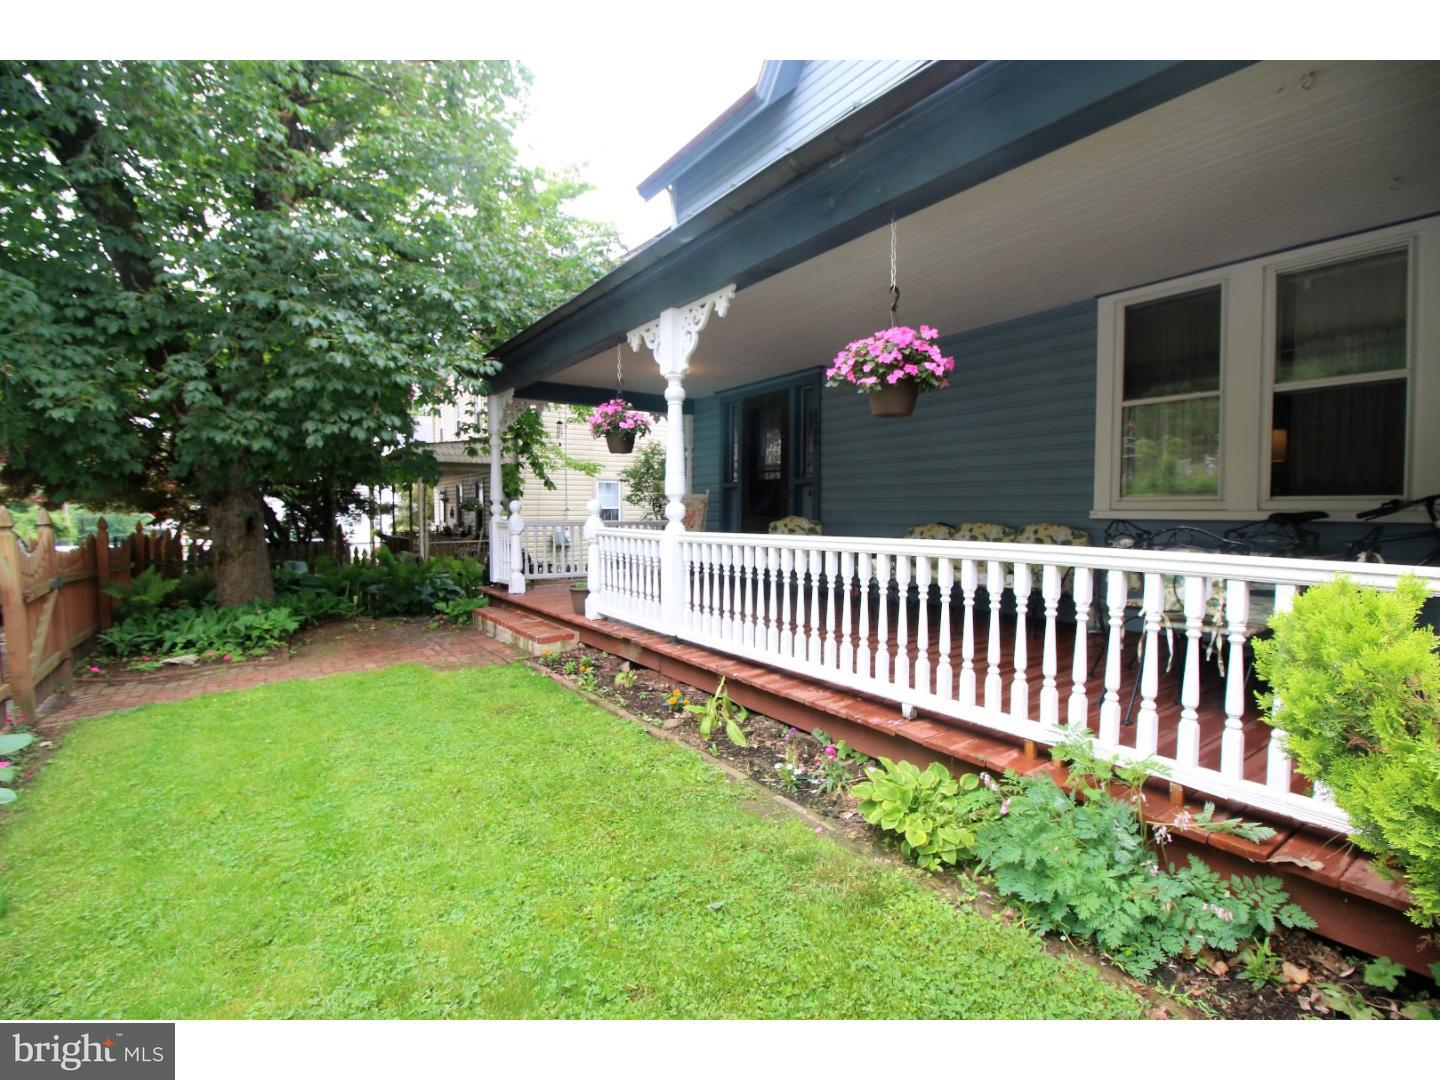 2650 MOUNT RD, ASTON - Listed at $279,900, ASTON